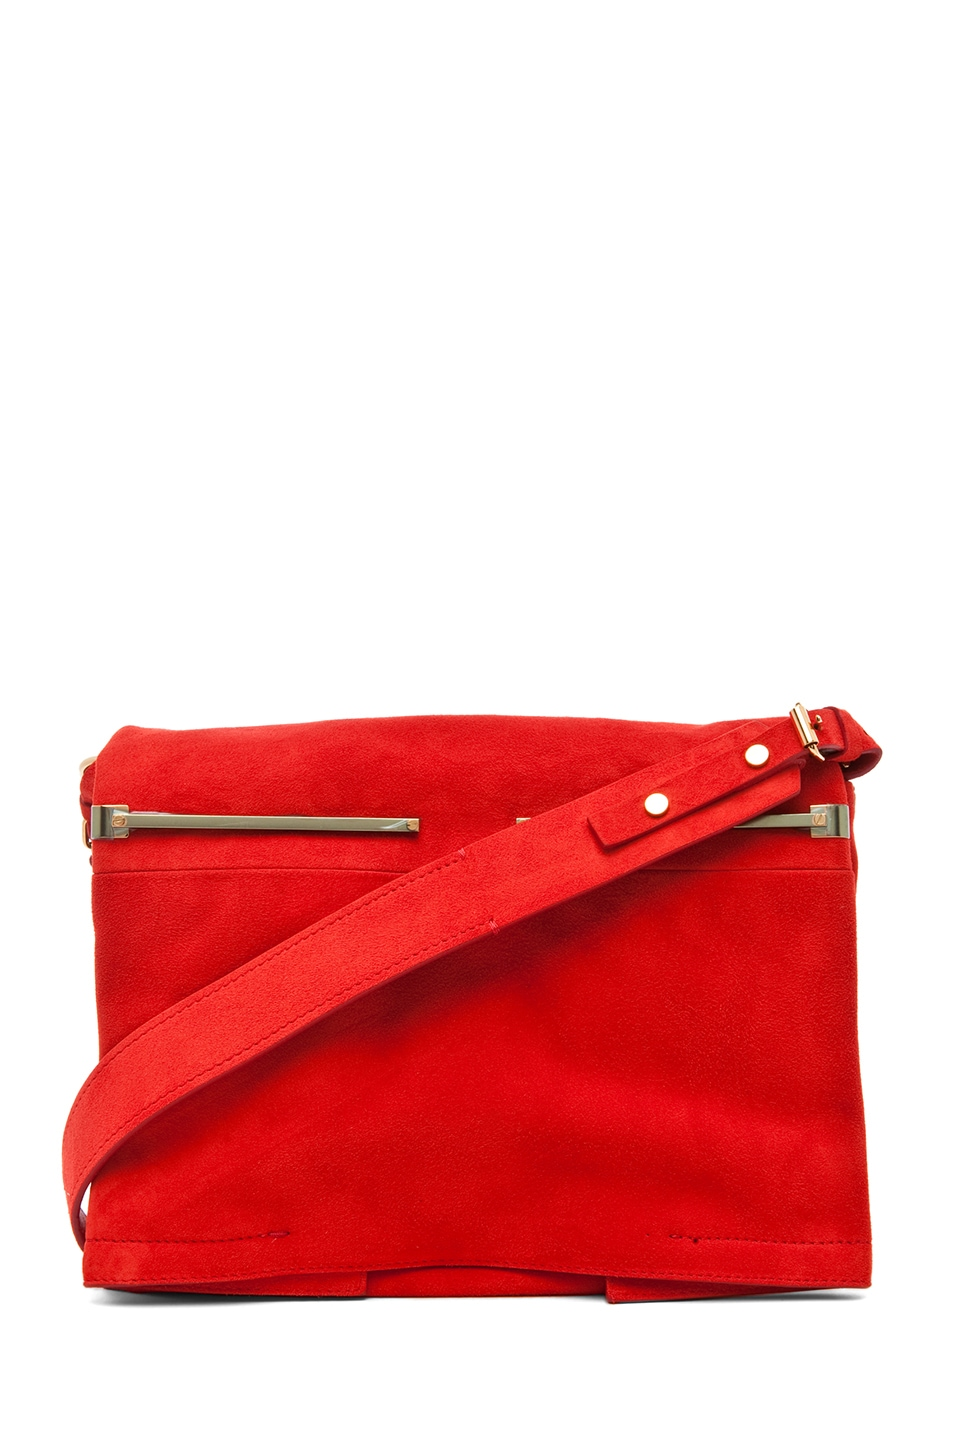 Image 1 of Lanvin Small Shoulder Bag in Poppy